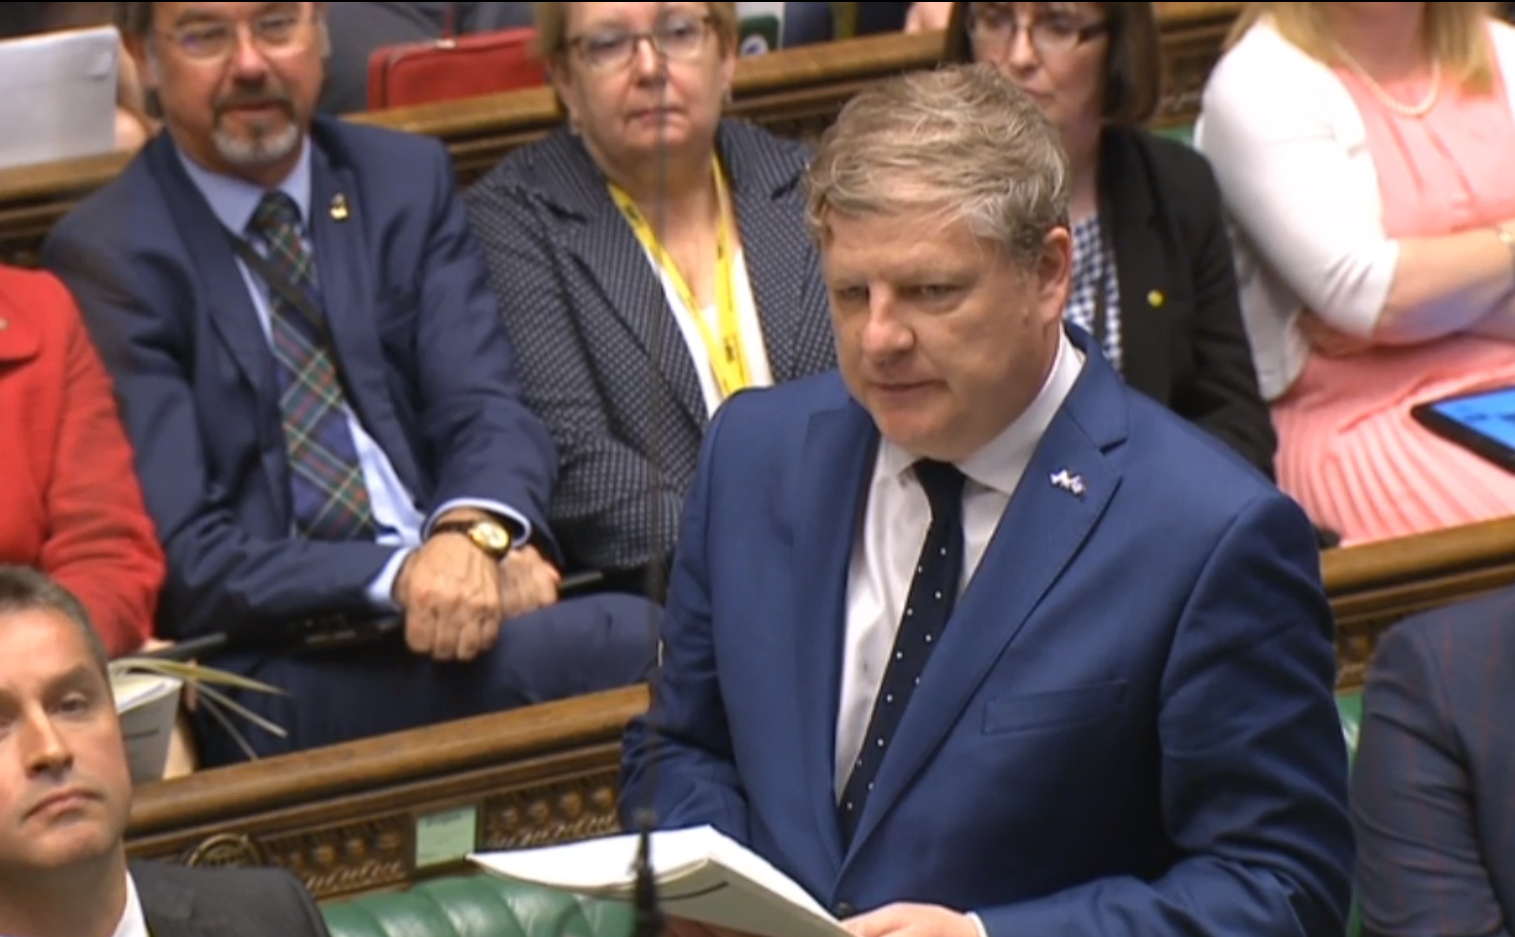 SNP Westminster leader Angus Robertson was in no mood to give David Cameron an easy ride on his last day in charge.